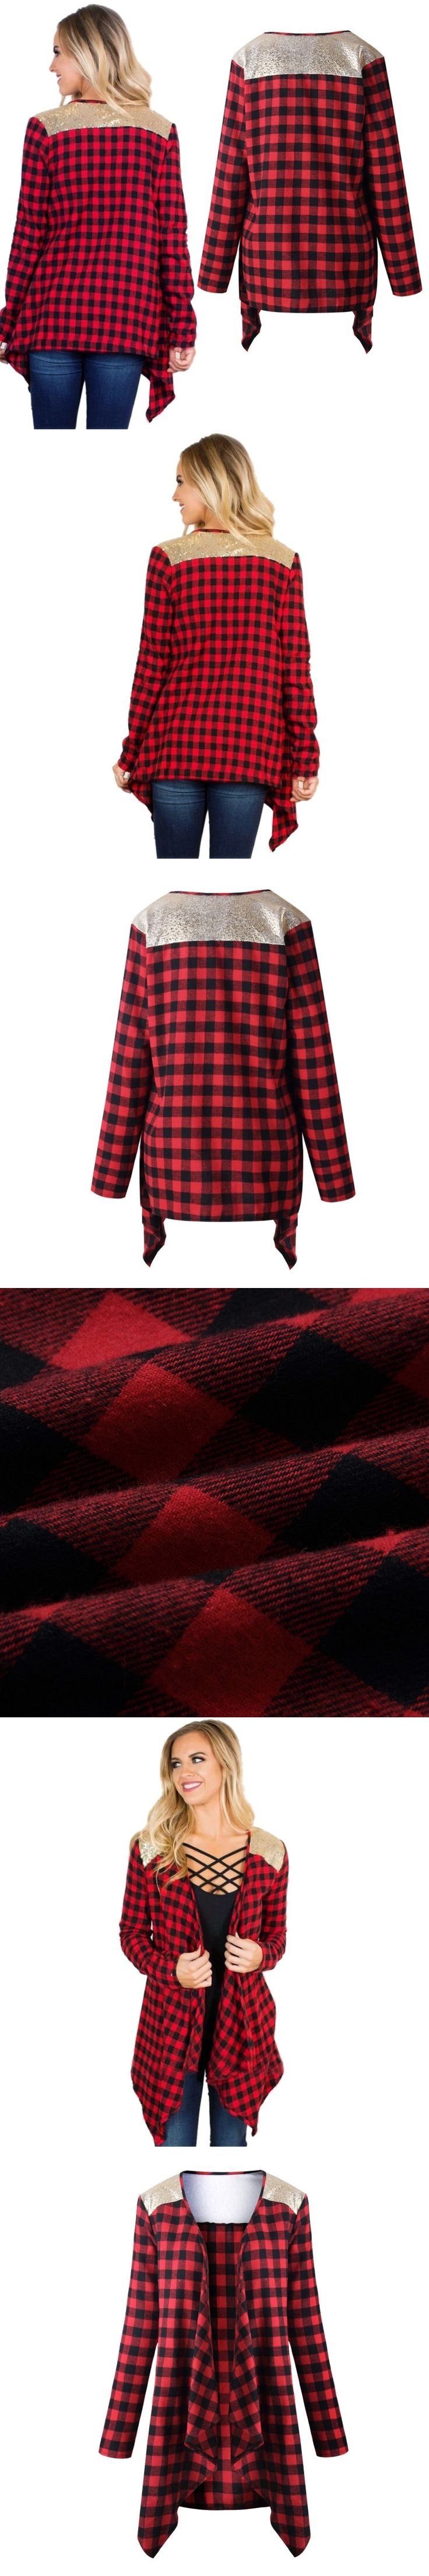 2017 Autumn Female Blazers And Jackets Patchwork Red Plaid Jacket Long Sleeve Slim Suit Without Button Women Blazerj2